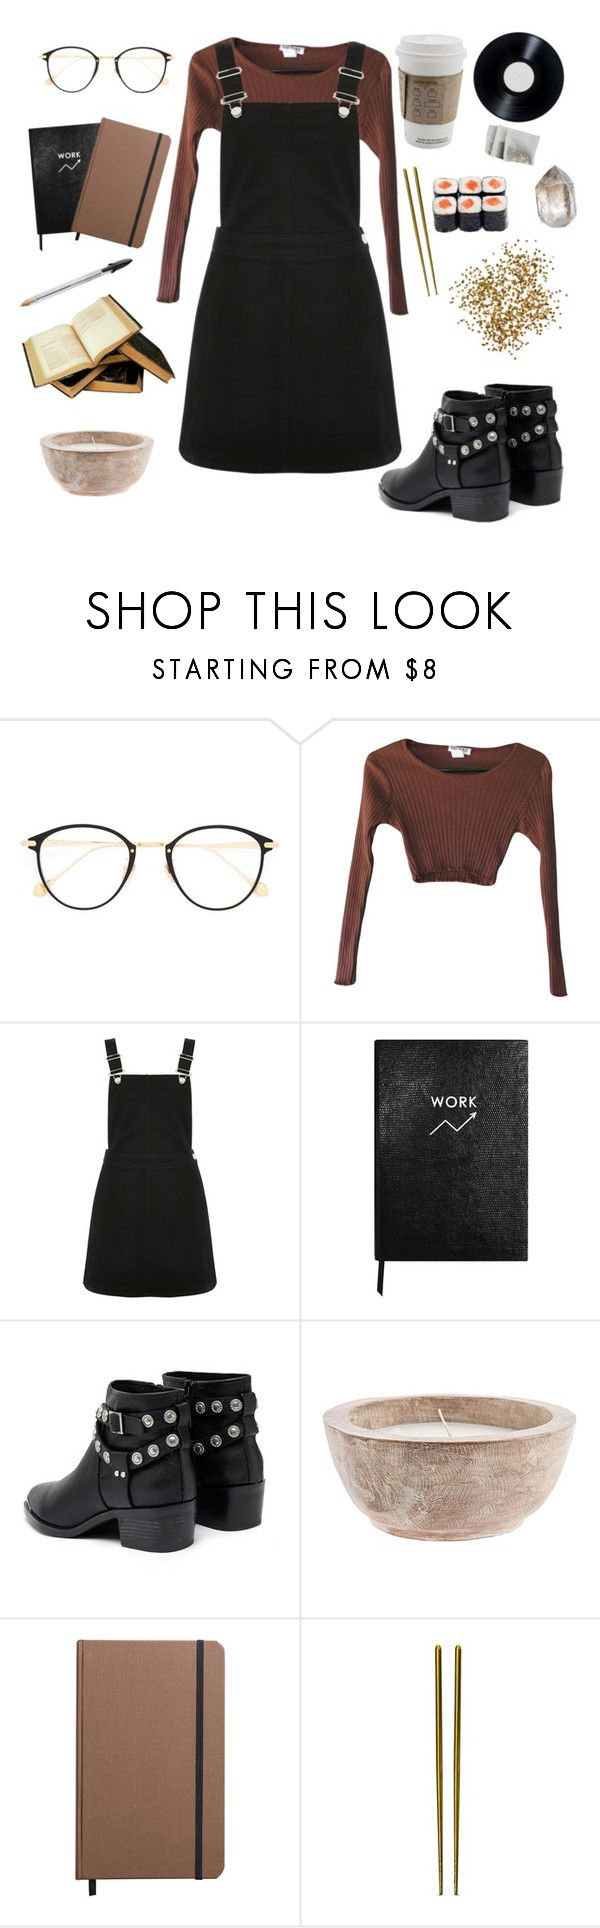 """working it out"" by youvegotraye ❤ liked on Polyvore featuring Frency & Mercury, Oasis, Sloane Stationery, Senso, Shinola and Mepra"